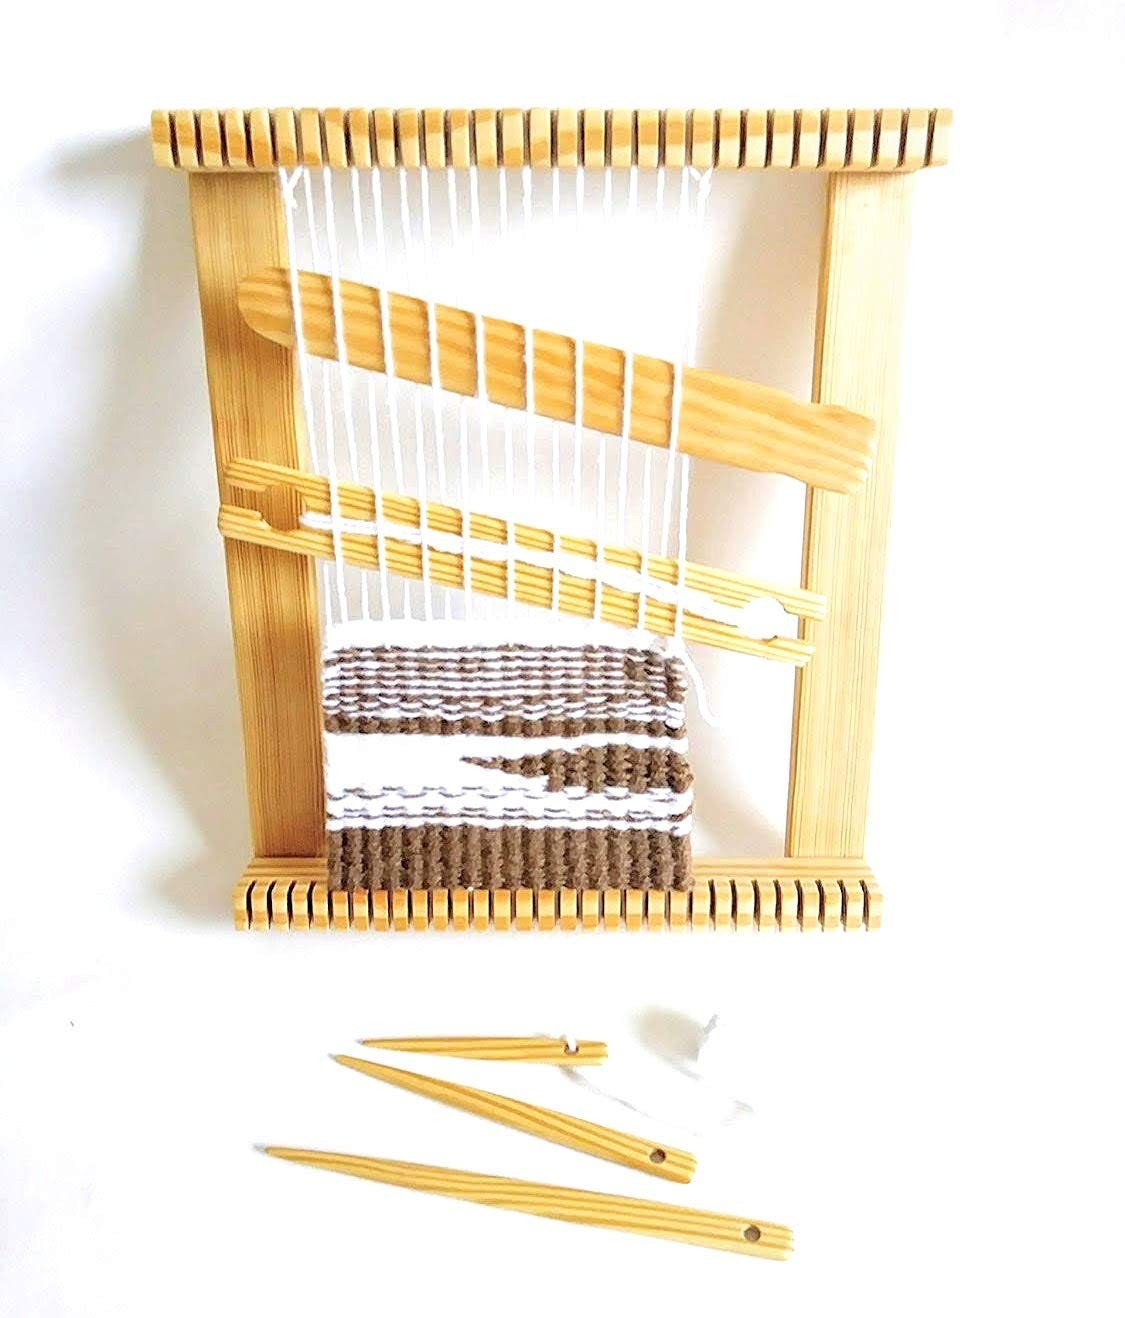 12 inches wide X 14 inches long Weaving loom kit Lap Loom, Frame Loom LoomsAndToolz z8488